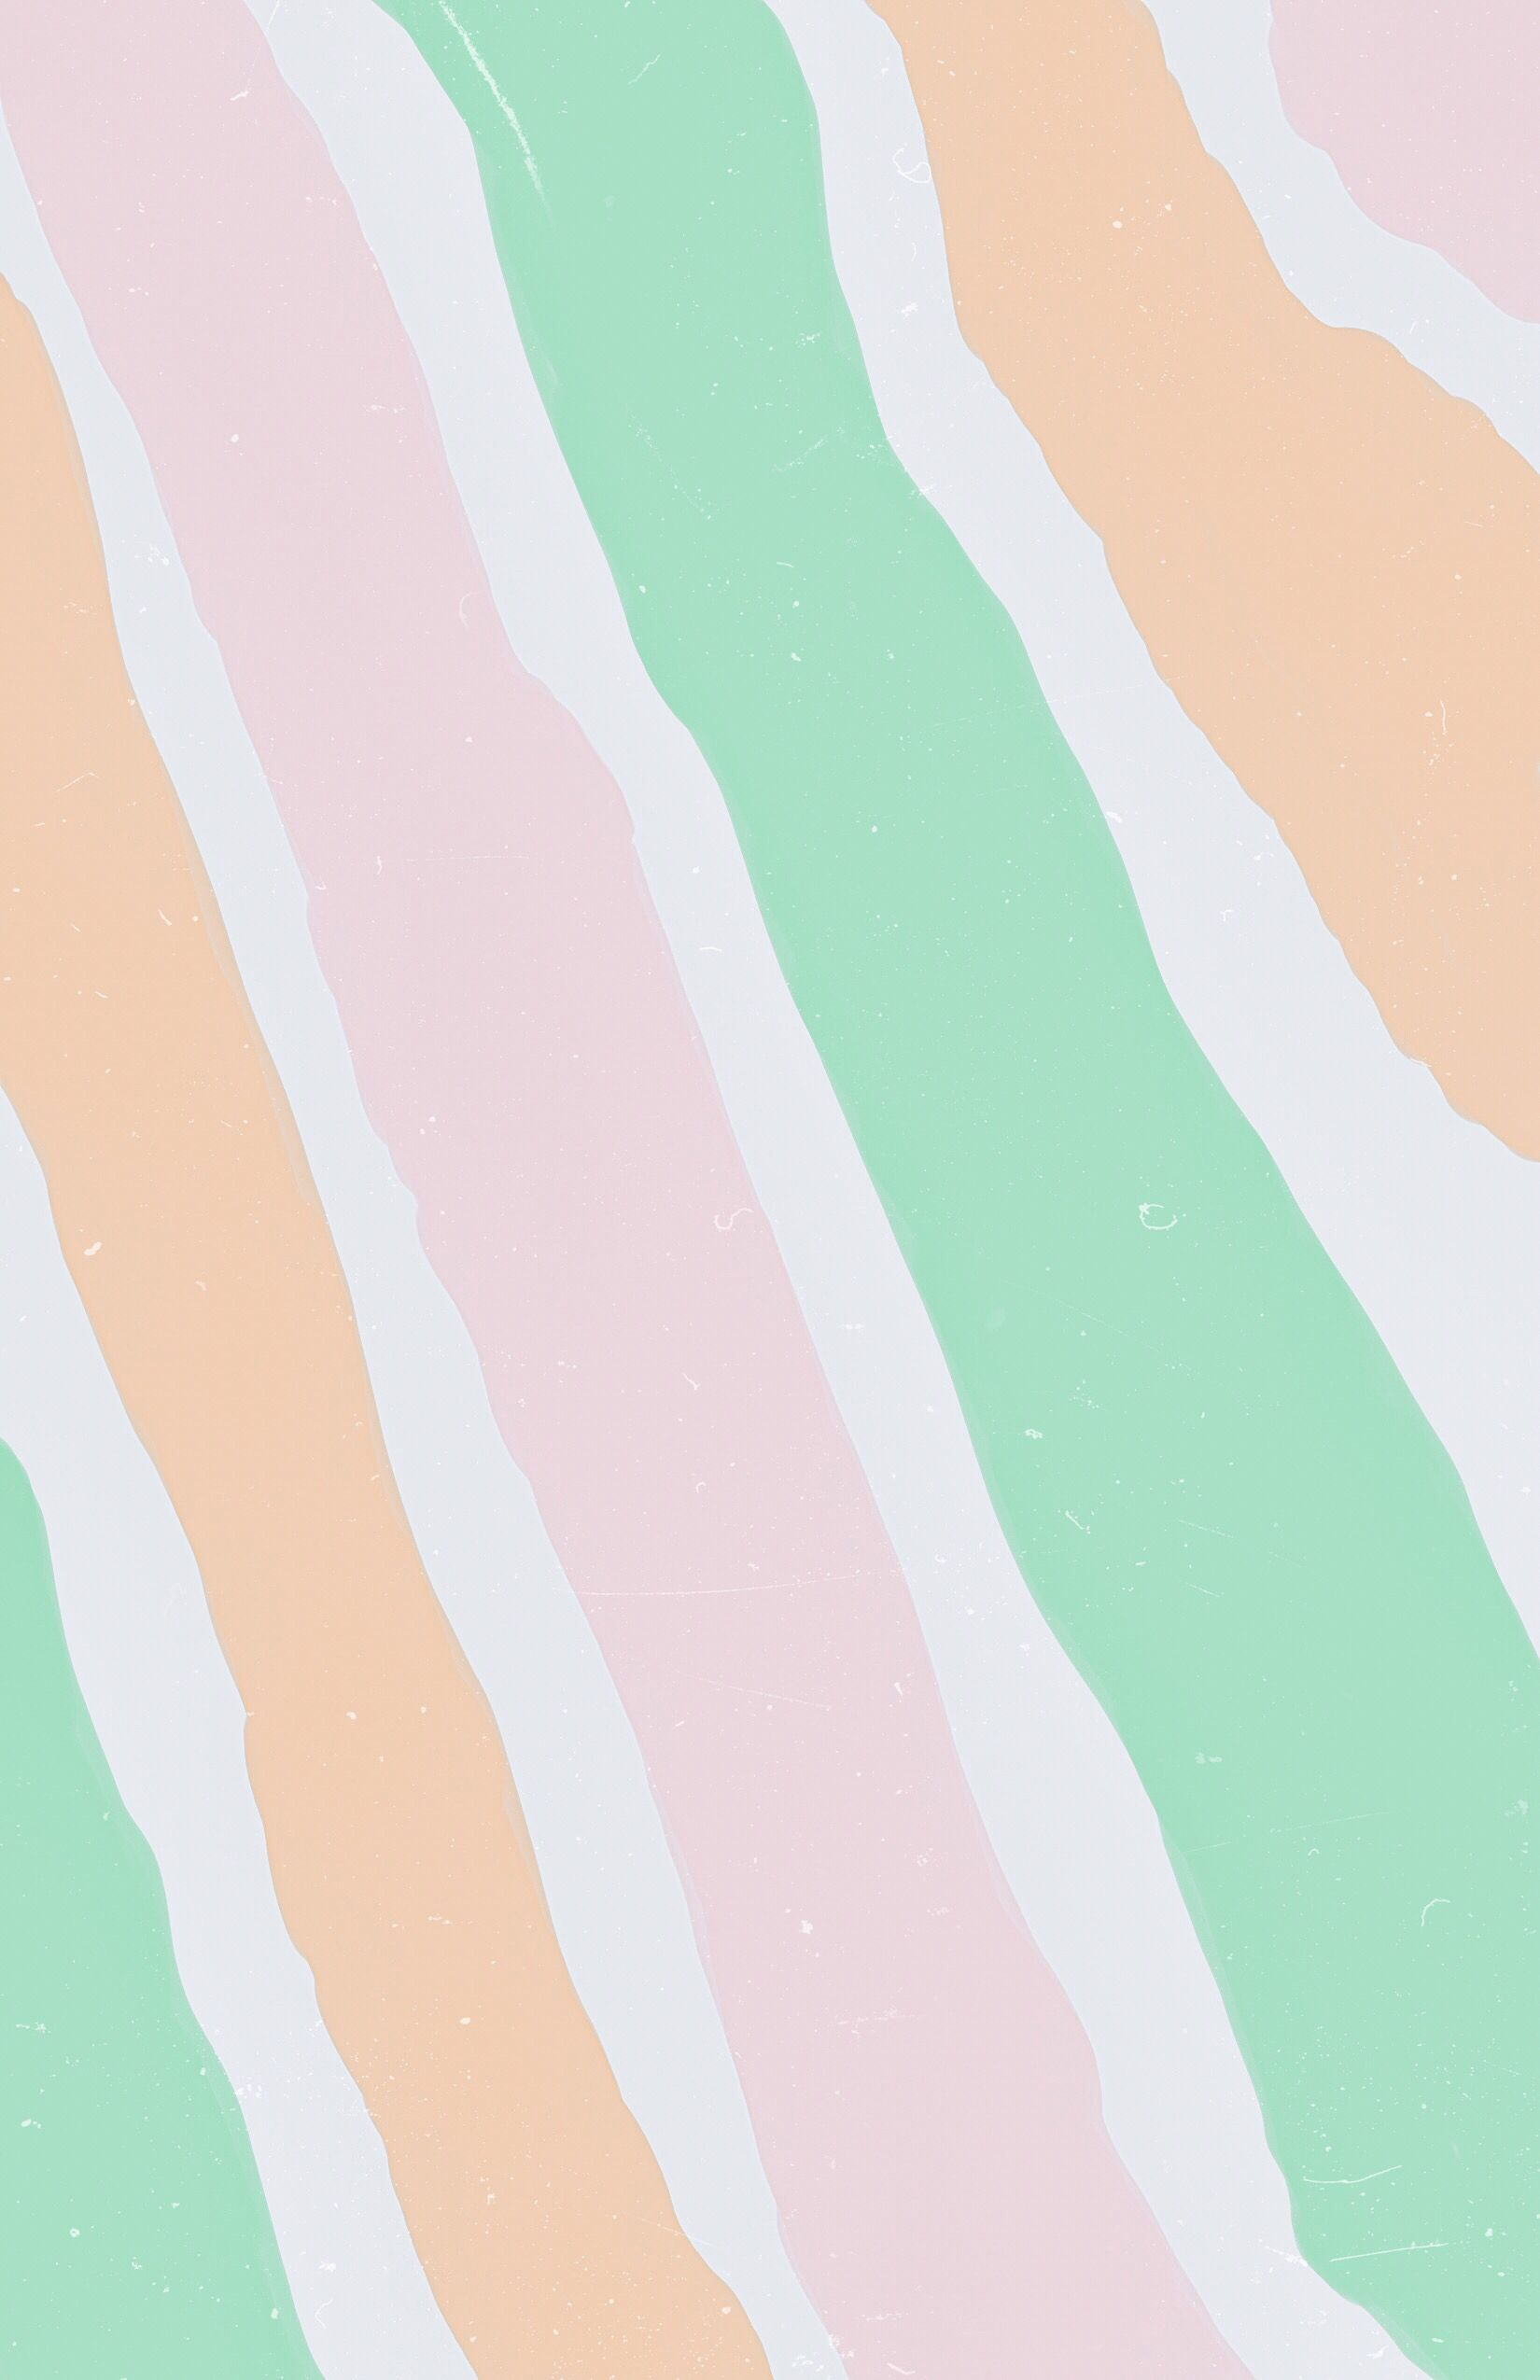 Vsco Patterns Wallpapers Posted By John Mercado